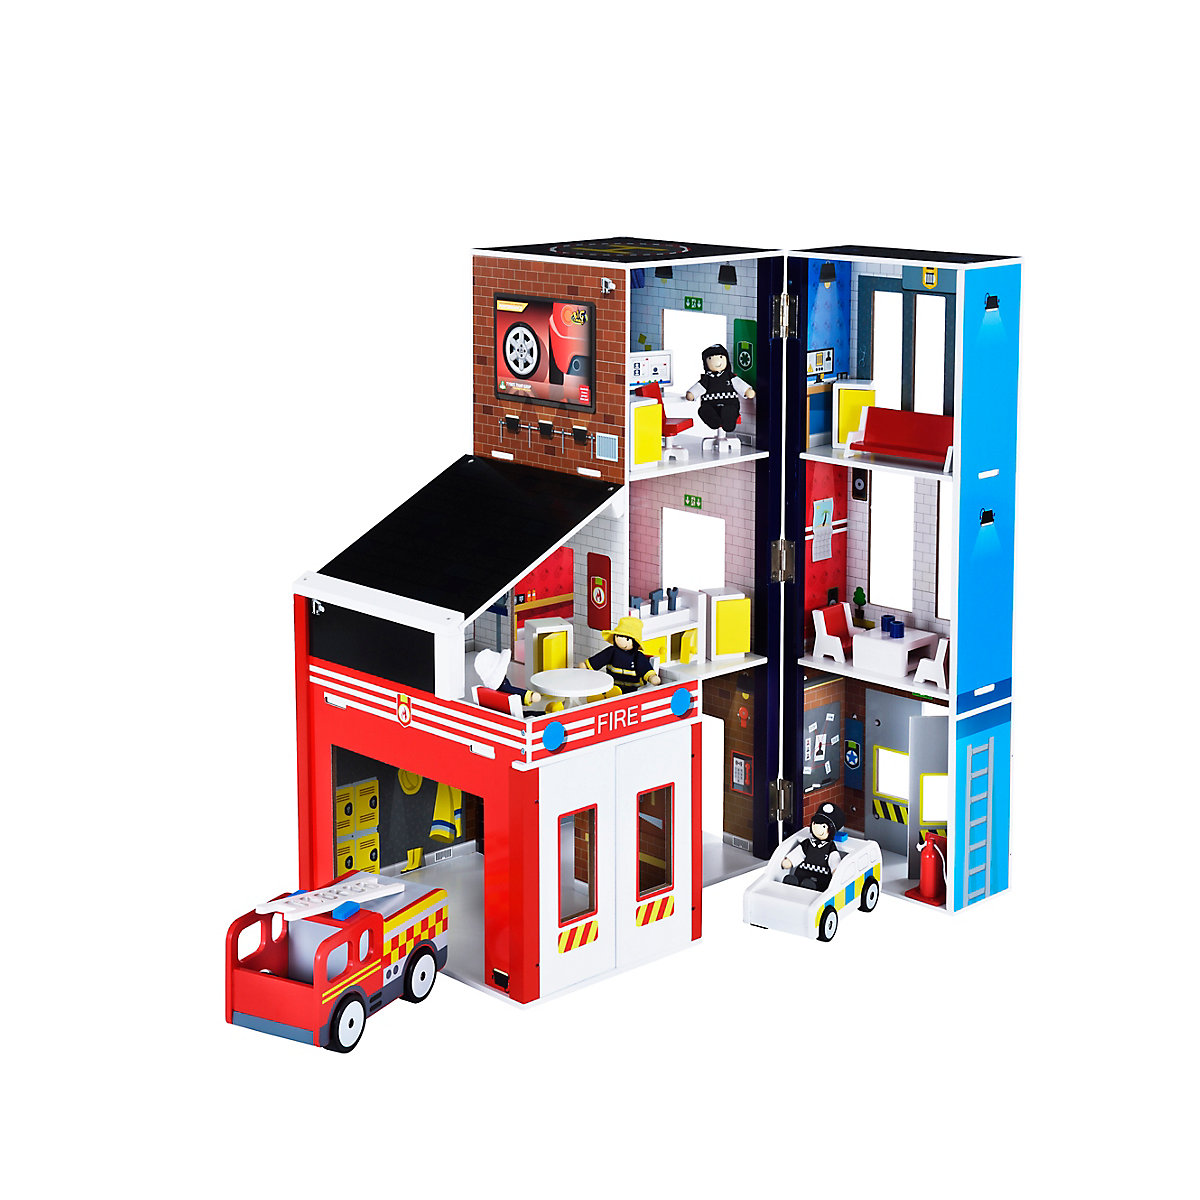 New ELC Boys and Girls Wooden Rescue Station Toy From 3 years - Early Learning Centre Gifts